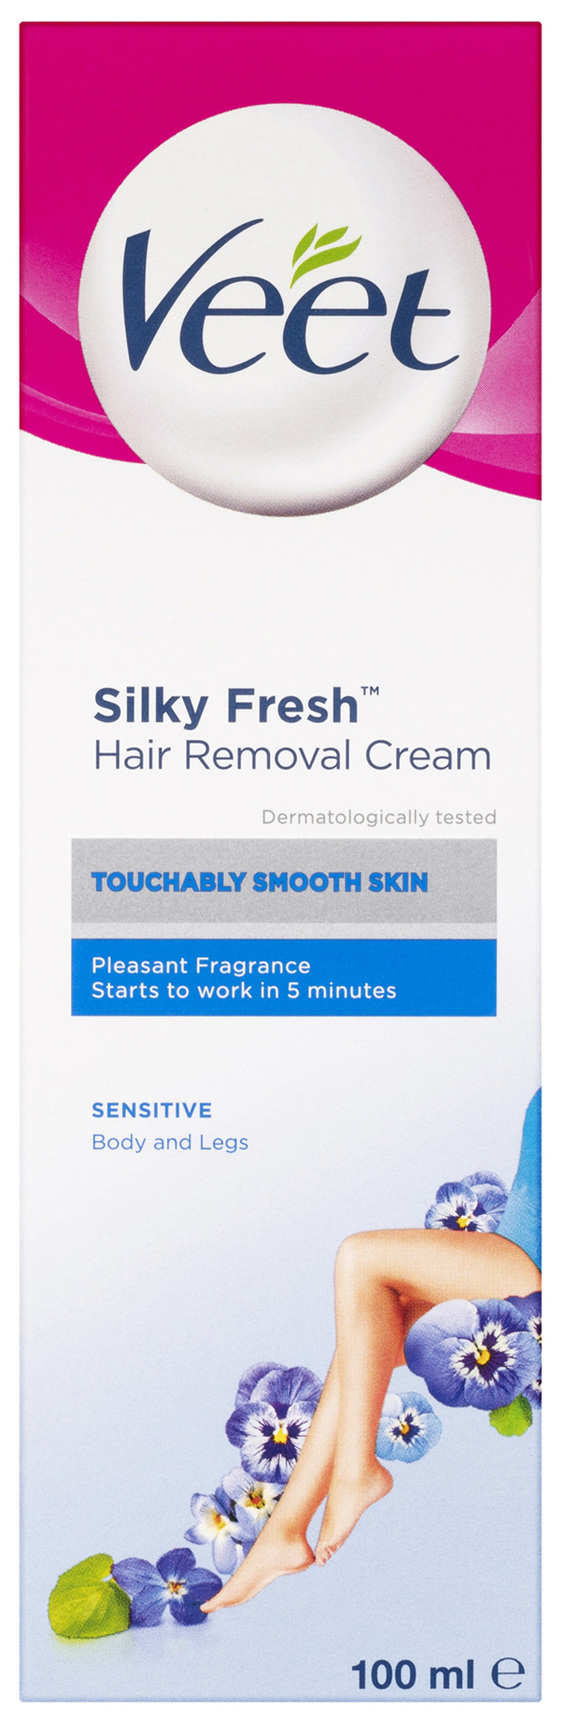 Veet Silky Fresh Hair Removal Cream 100mL